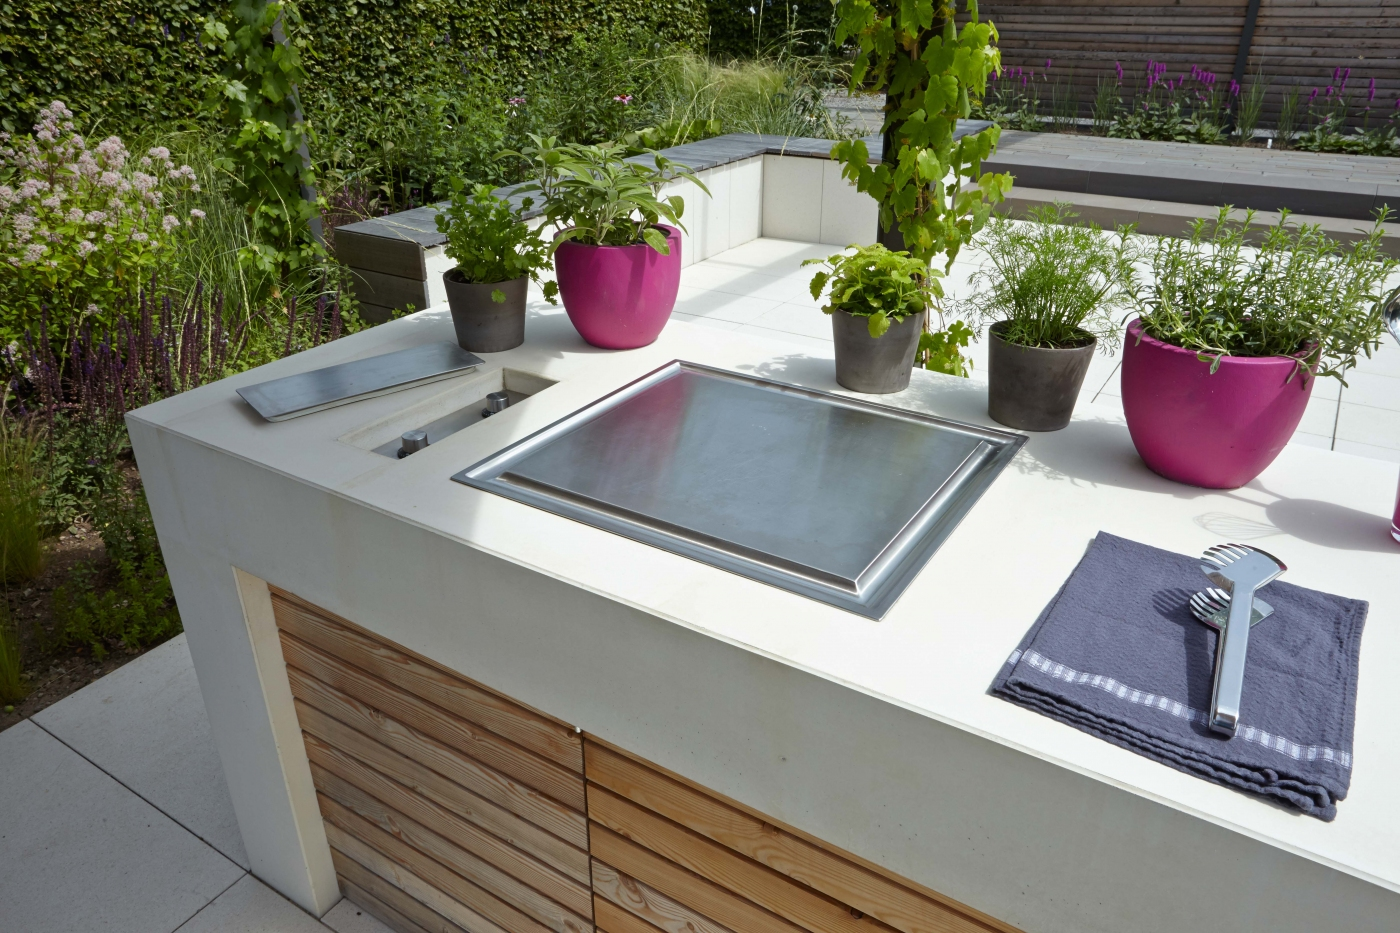 Garden warming party und illumina 2015 for Outdoor grill kuche